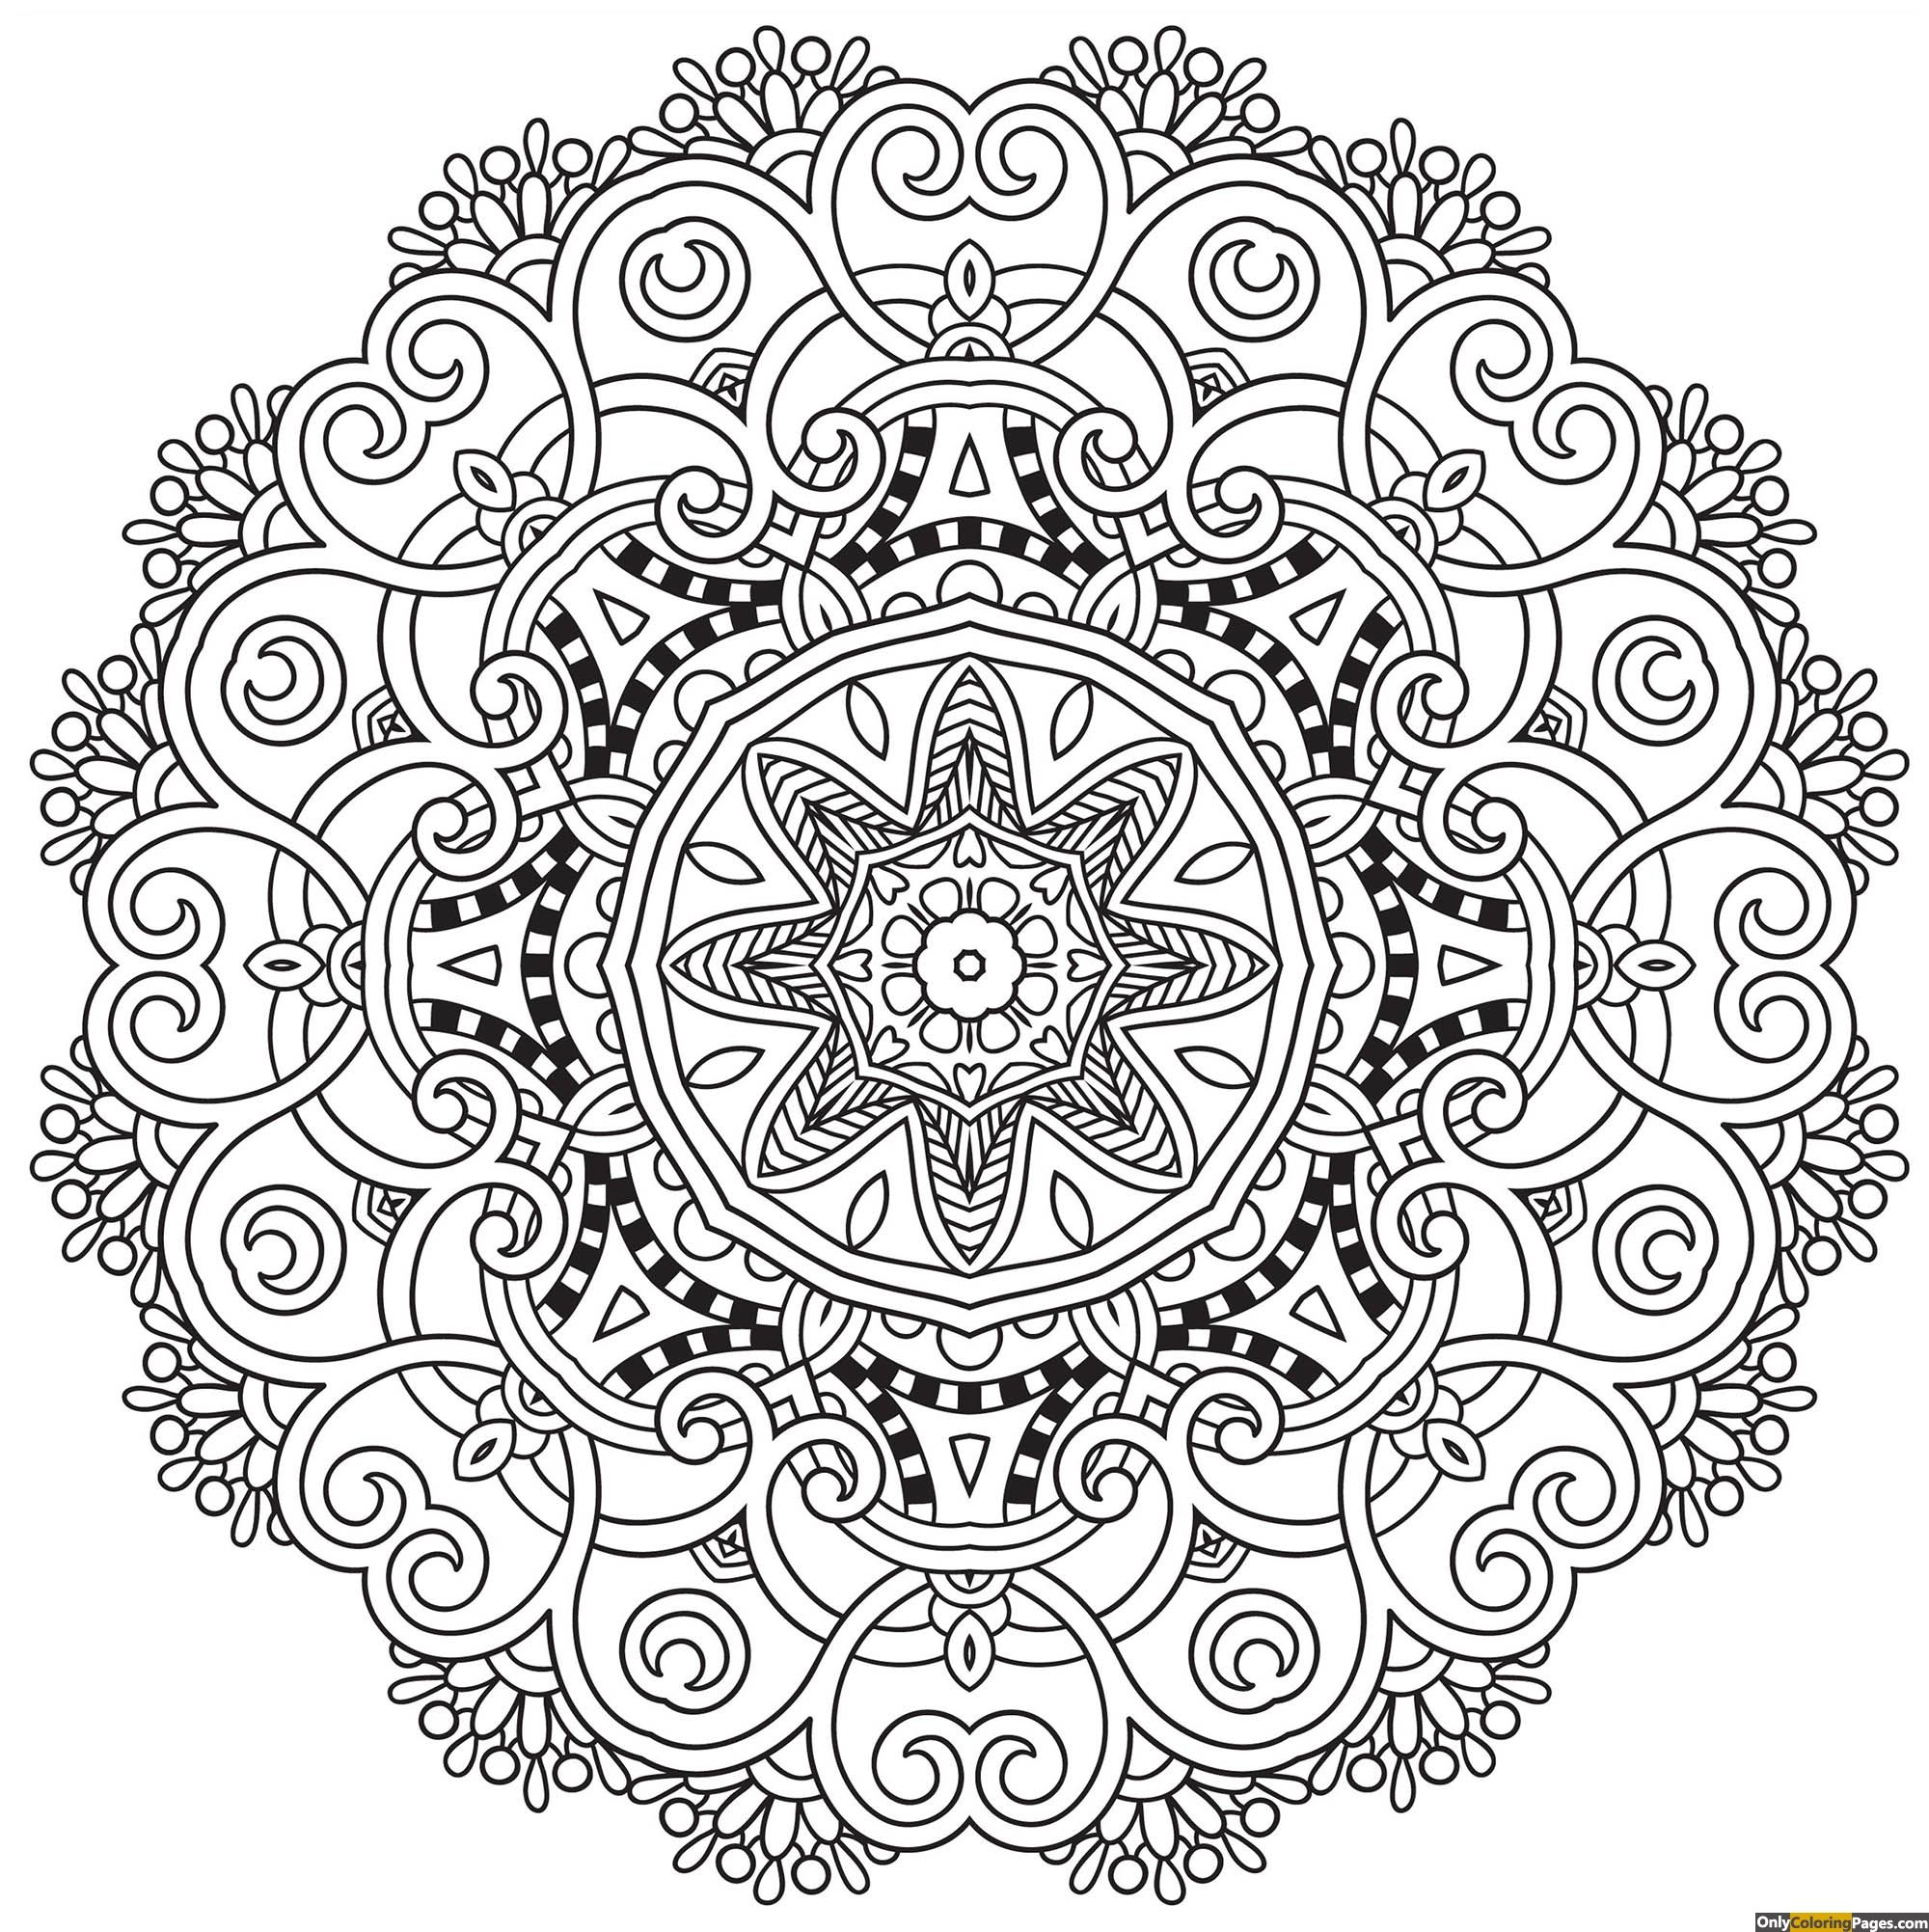 watches, tooth, today, summer, style, spring, page, outfit, nature, mandalas, mandala, love, look, life, hijab, hair, friends, flower, fashion, dresses, dentistry, dentist, cute, colouring, coloringpages, coloringbook, coloring, Clean, beauty